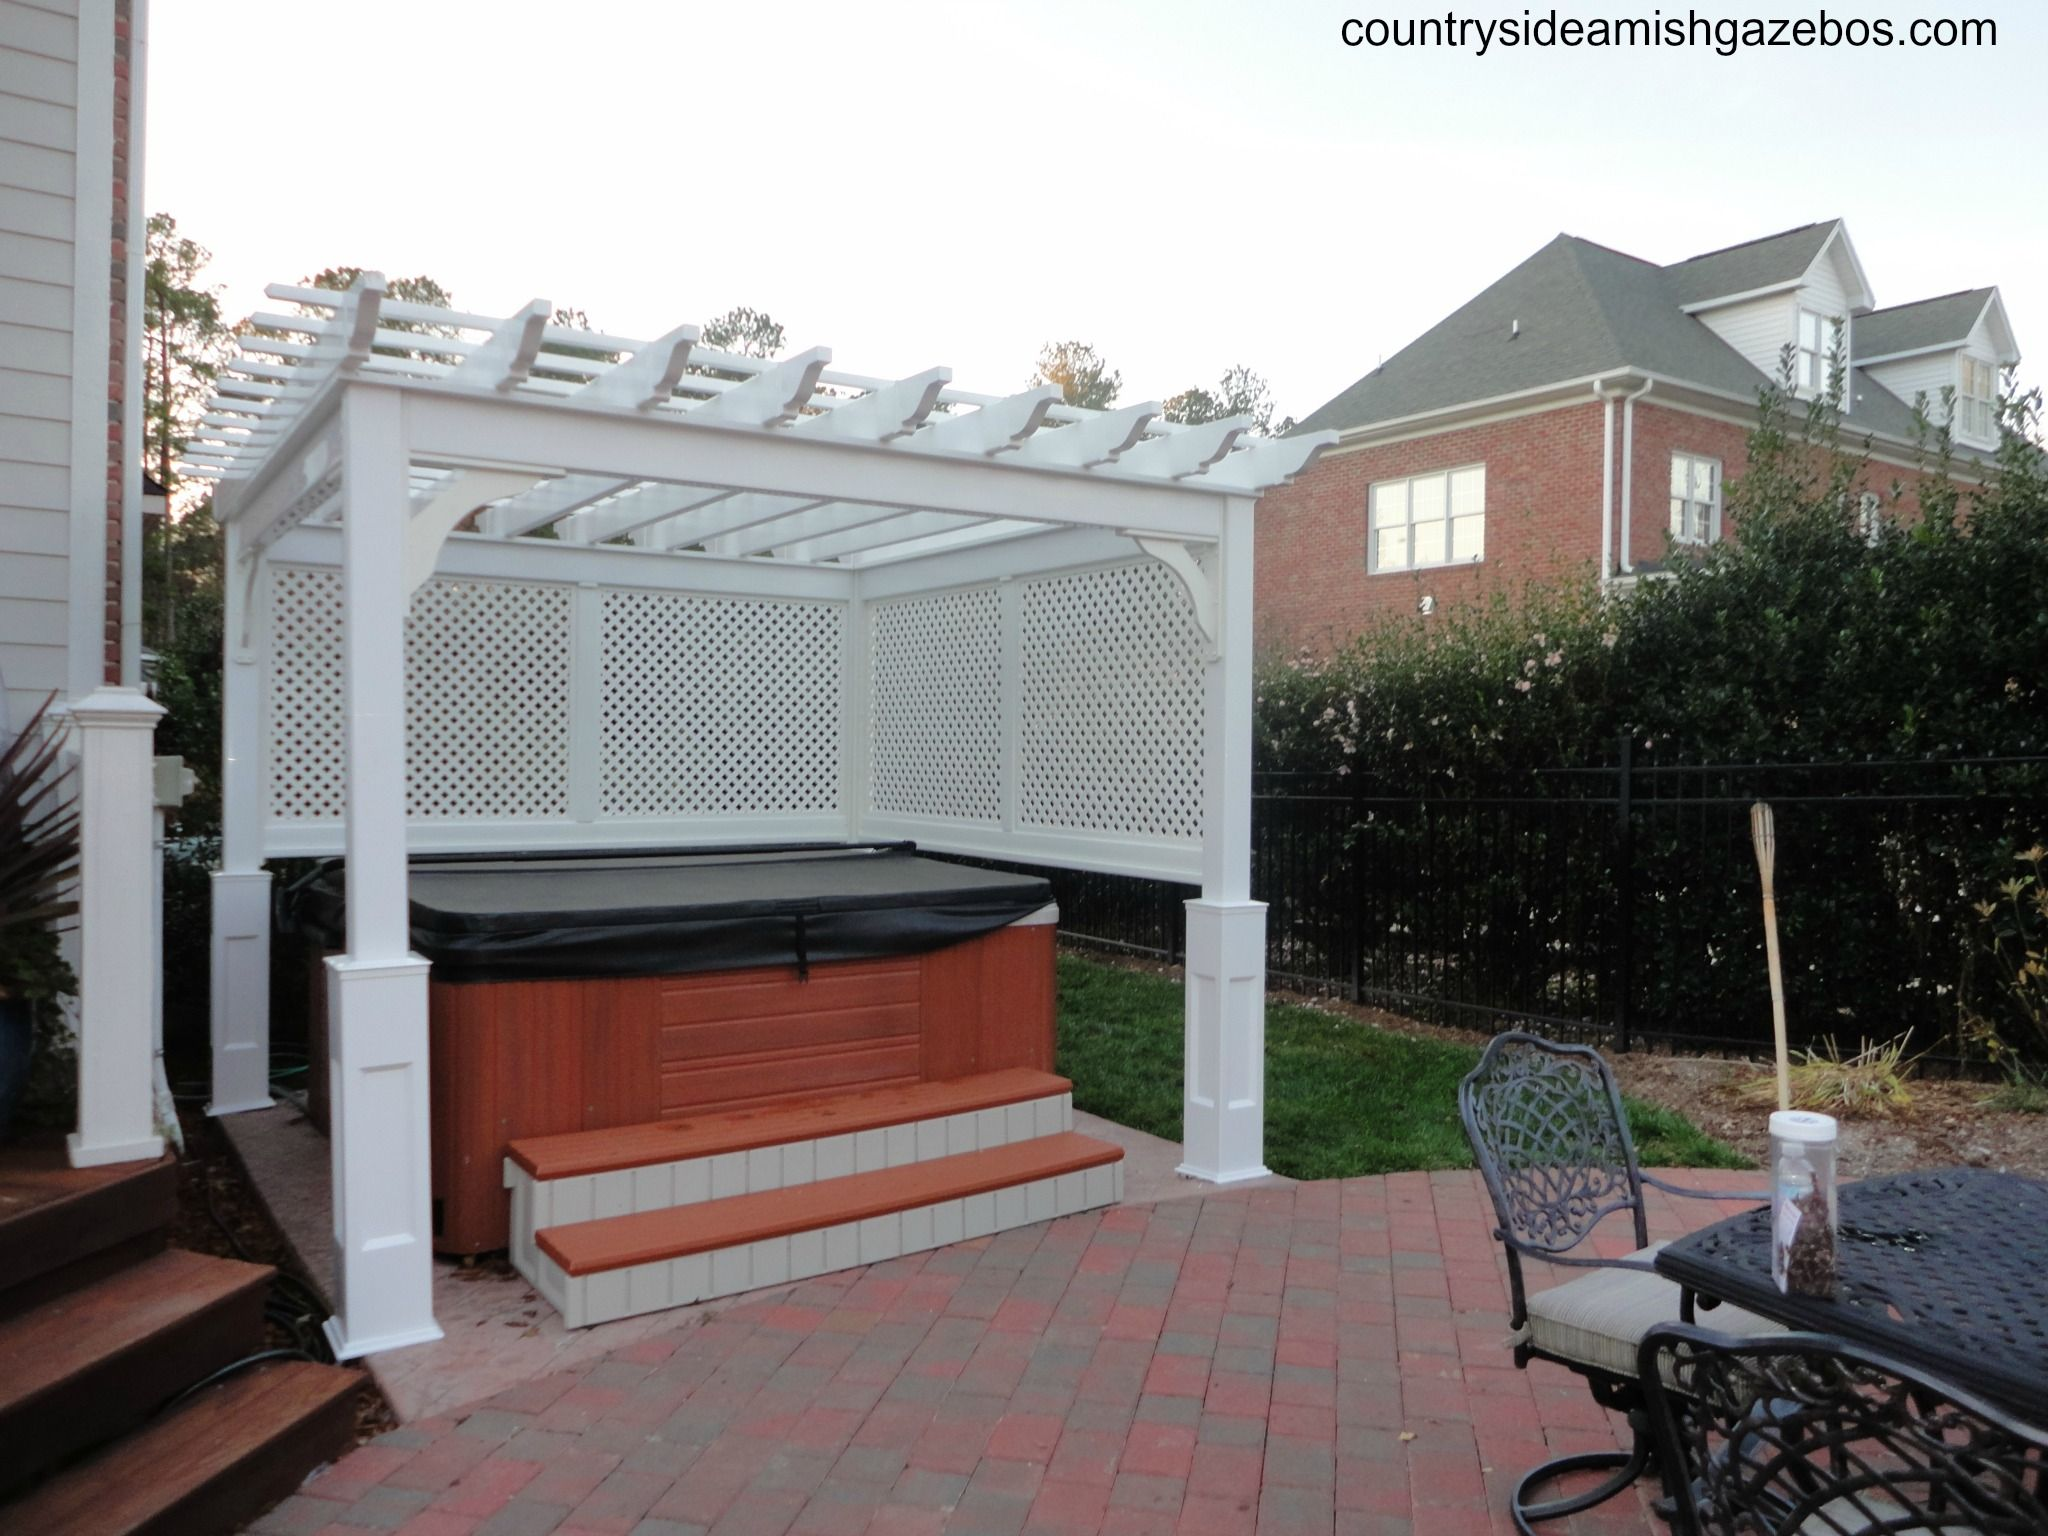 10x10 Vinyl Pergola Half Wall Lattice Vinyl Pergola Pergola Patio Design